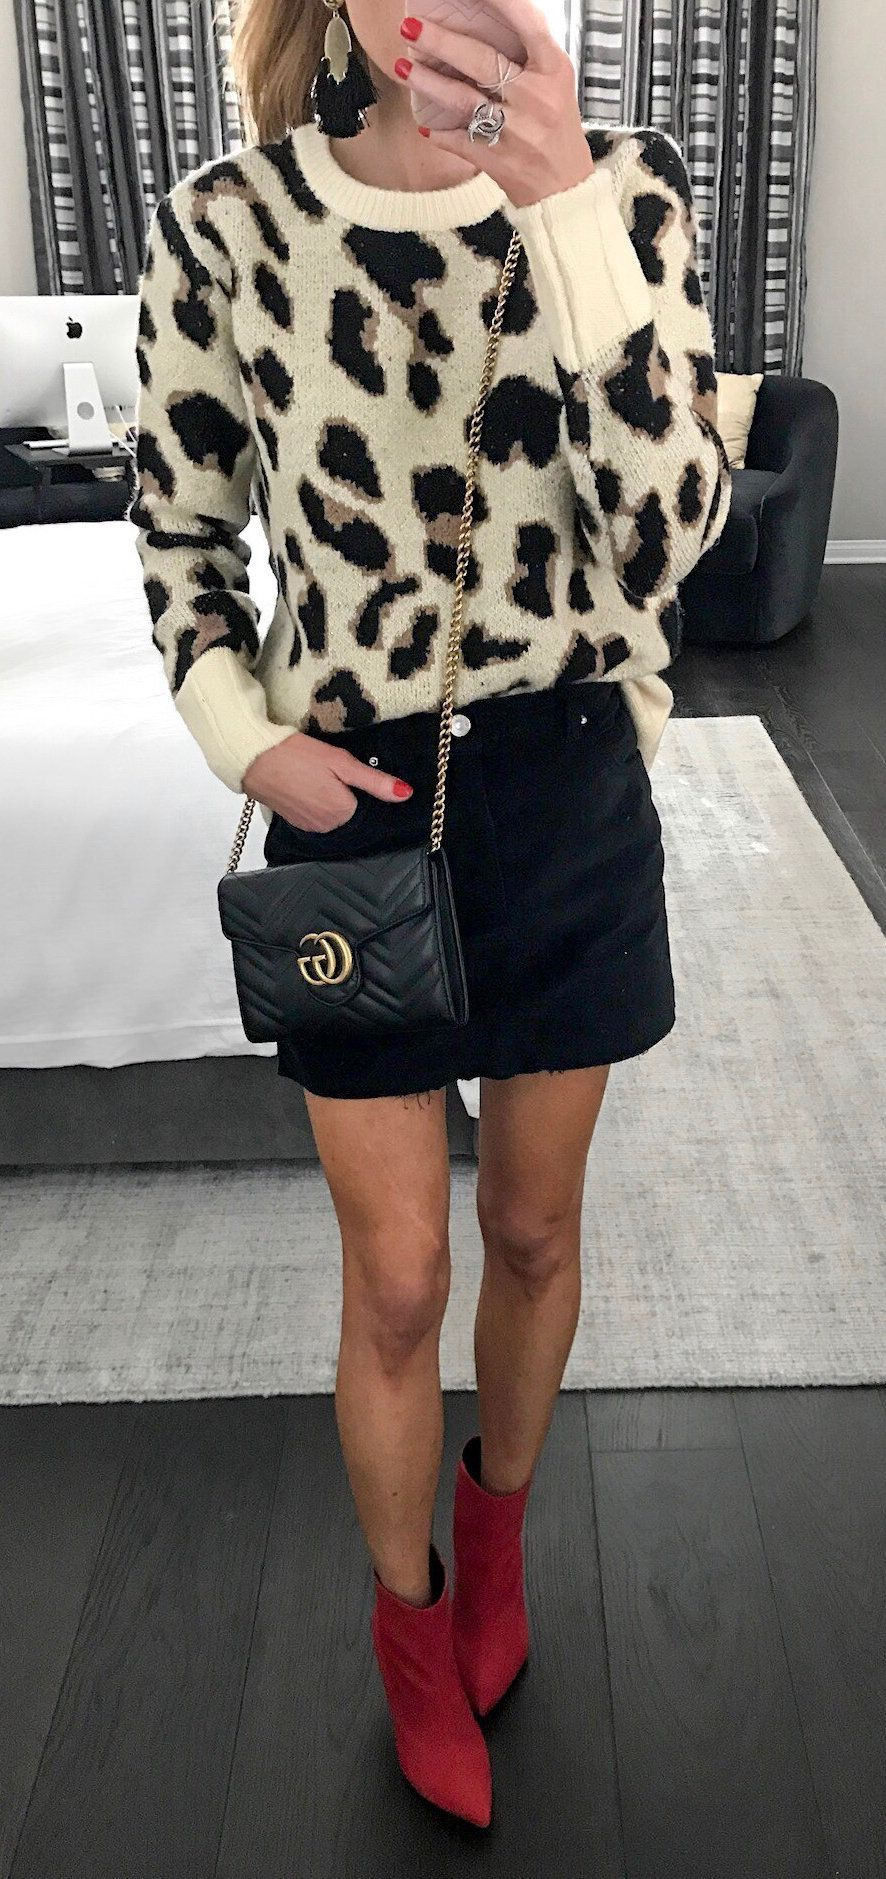 Animal print sweater with black mini skirt and red boots.